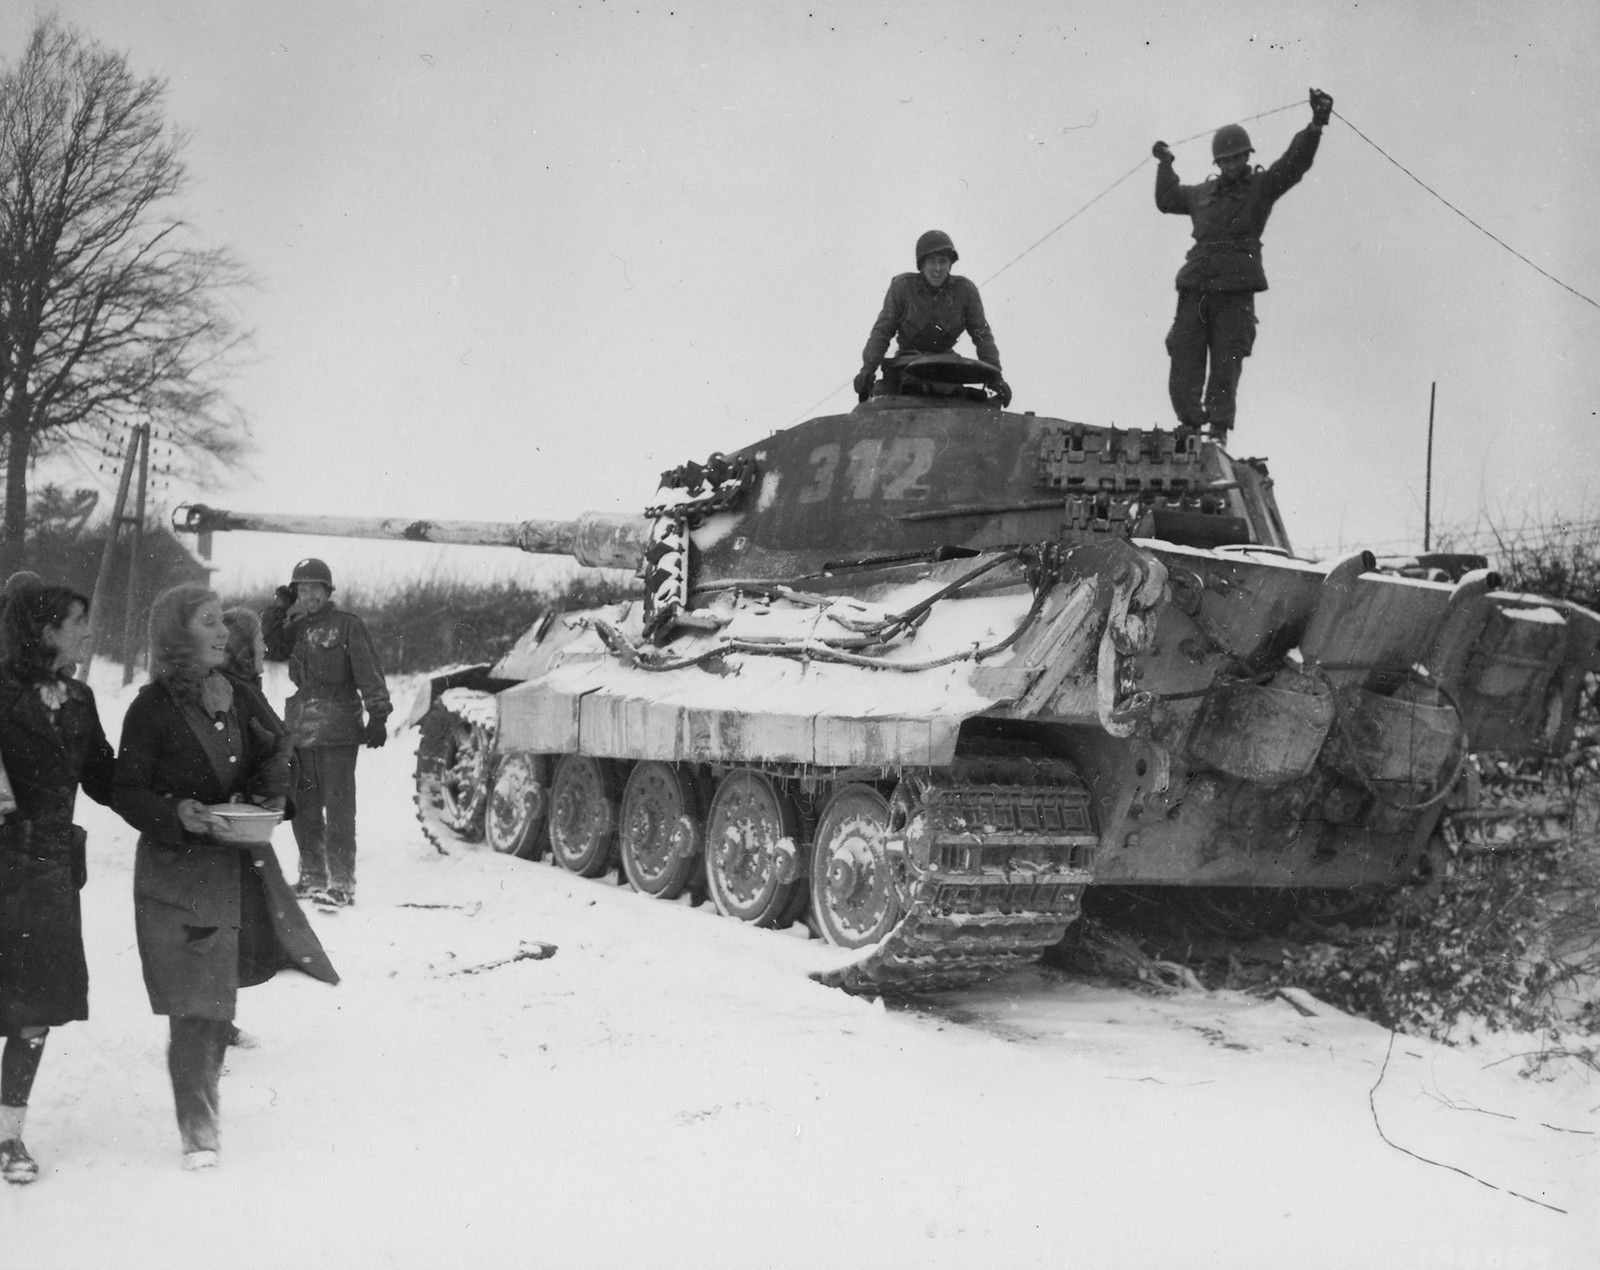 American soldiers of the 82nd Airborne Division inspect a disabled German Tiger II tank and admire two passing girls near the village of Corenne, Belgium (February 1945). The soldier at the top right is stringing wire for field phones.